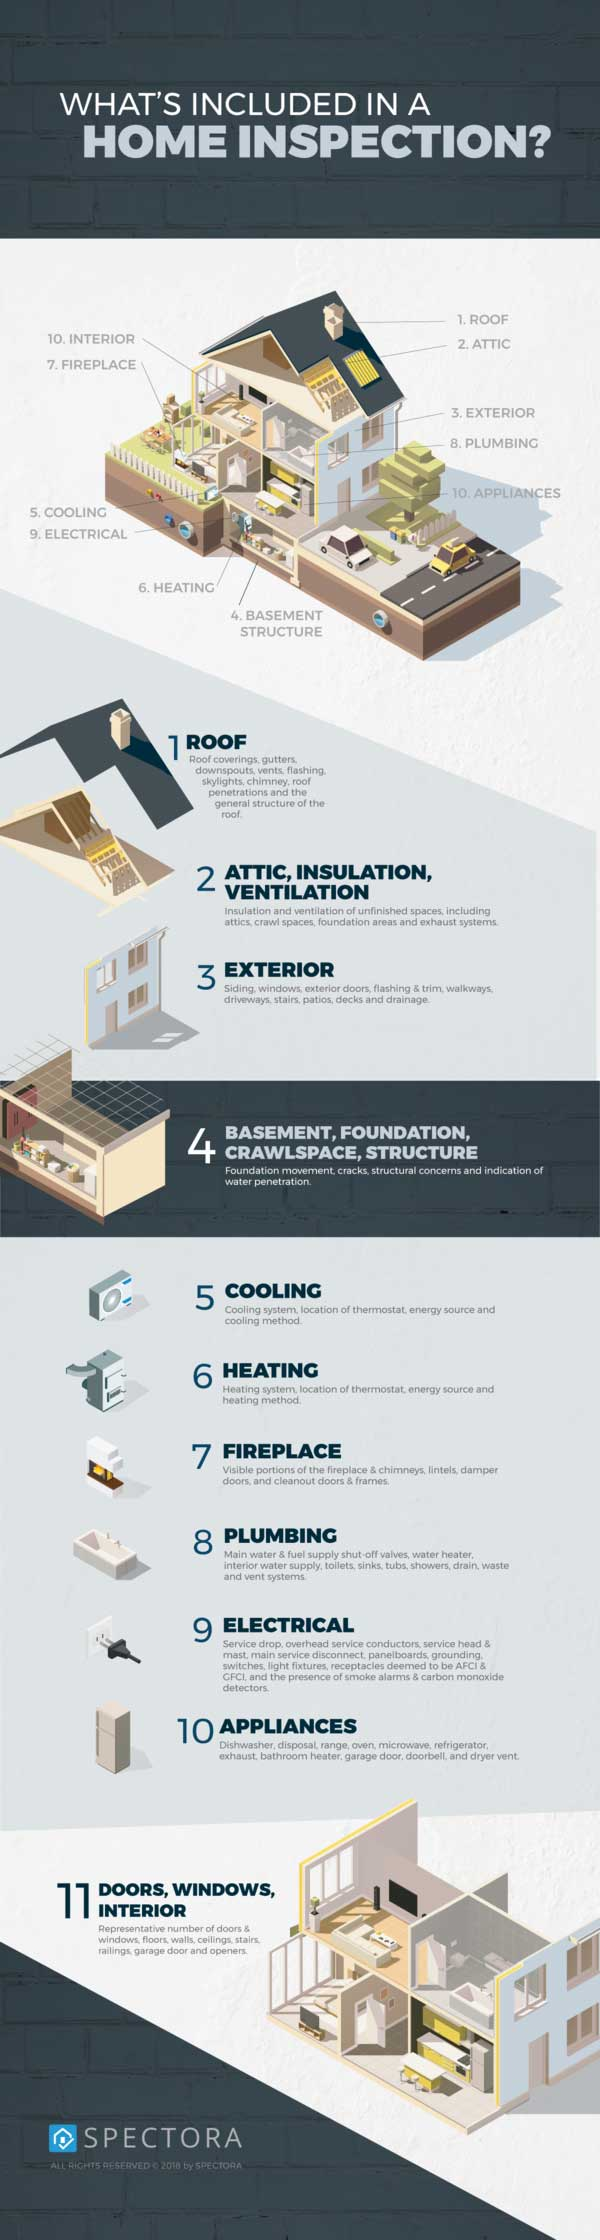 What's Inspected in a Home Inspection